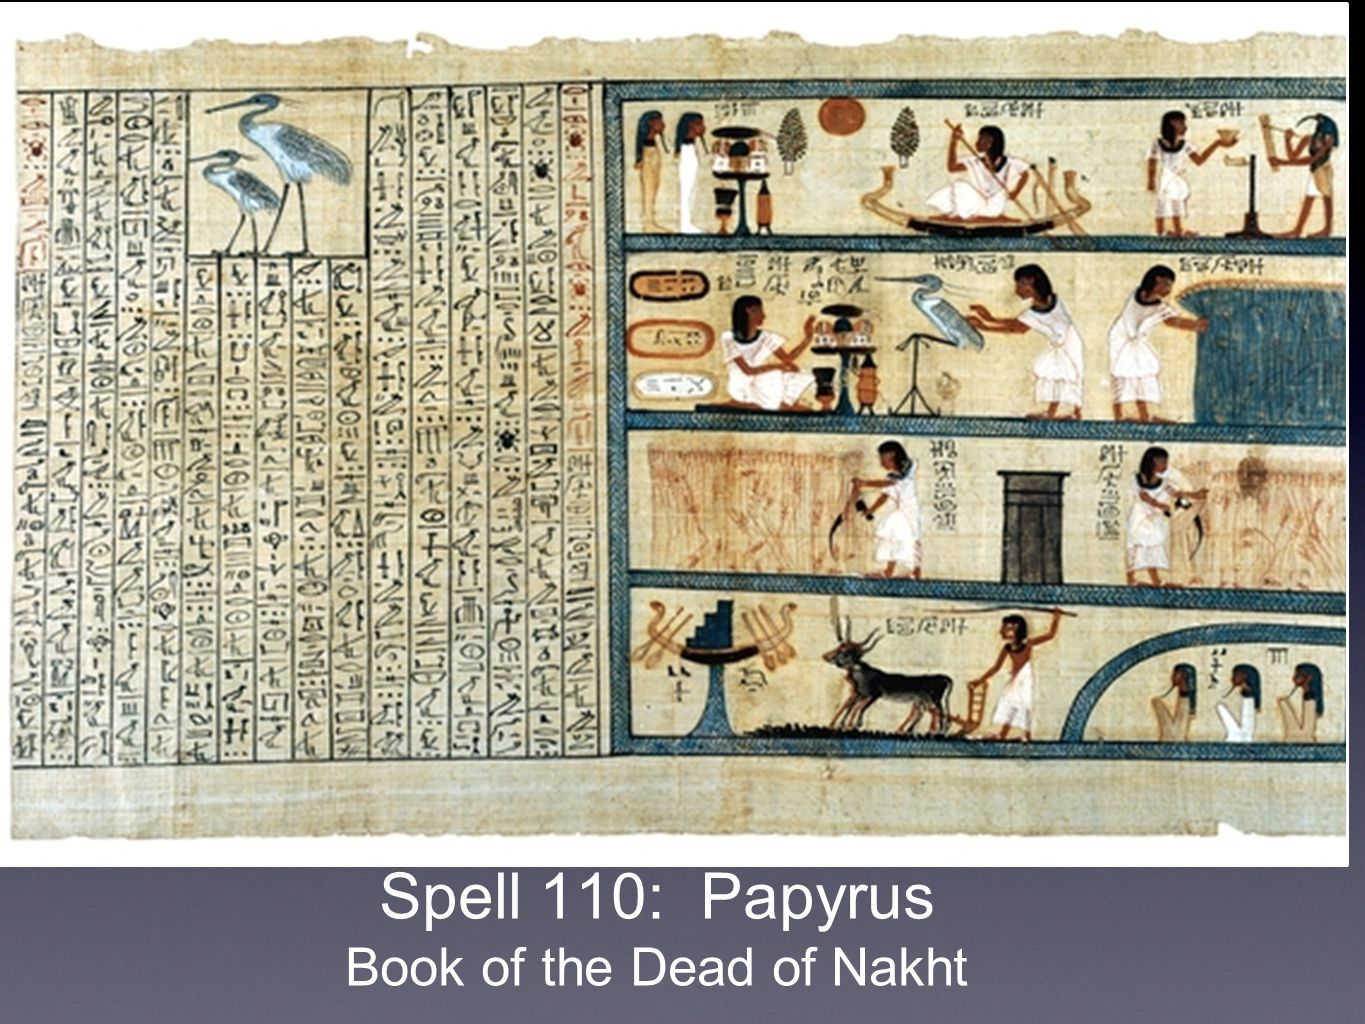 Spell 110: Papyrus Book of the Dead of Nakht